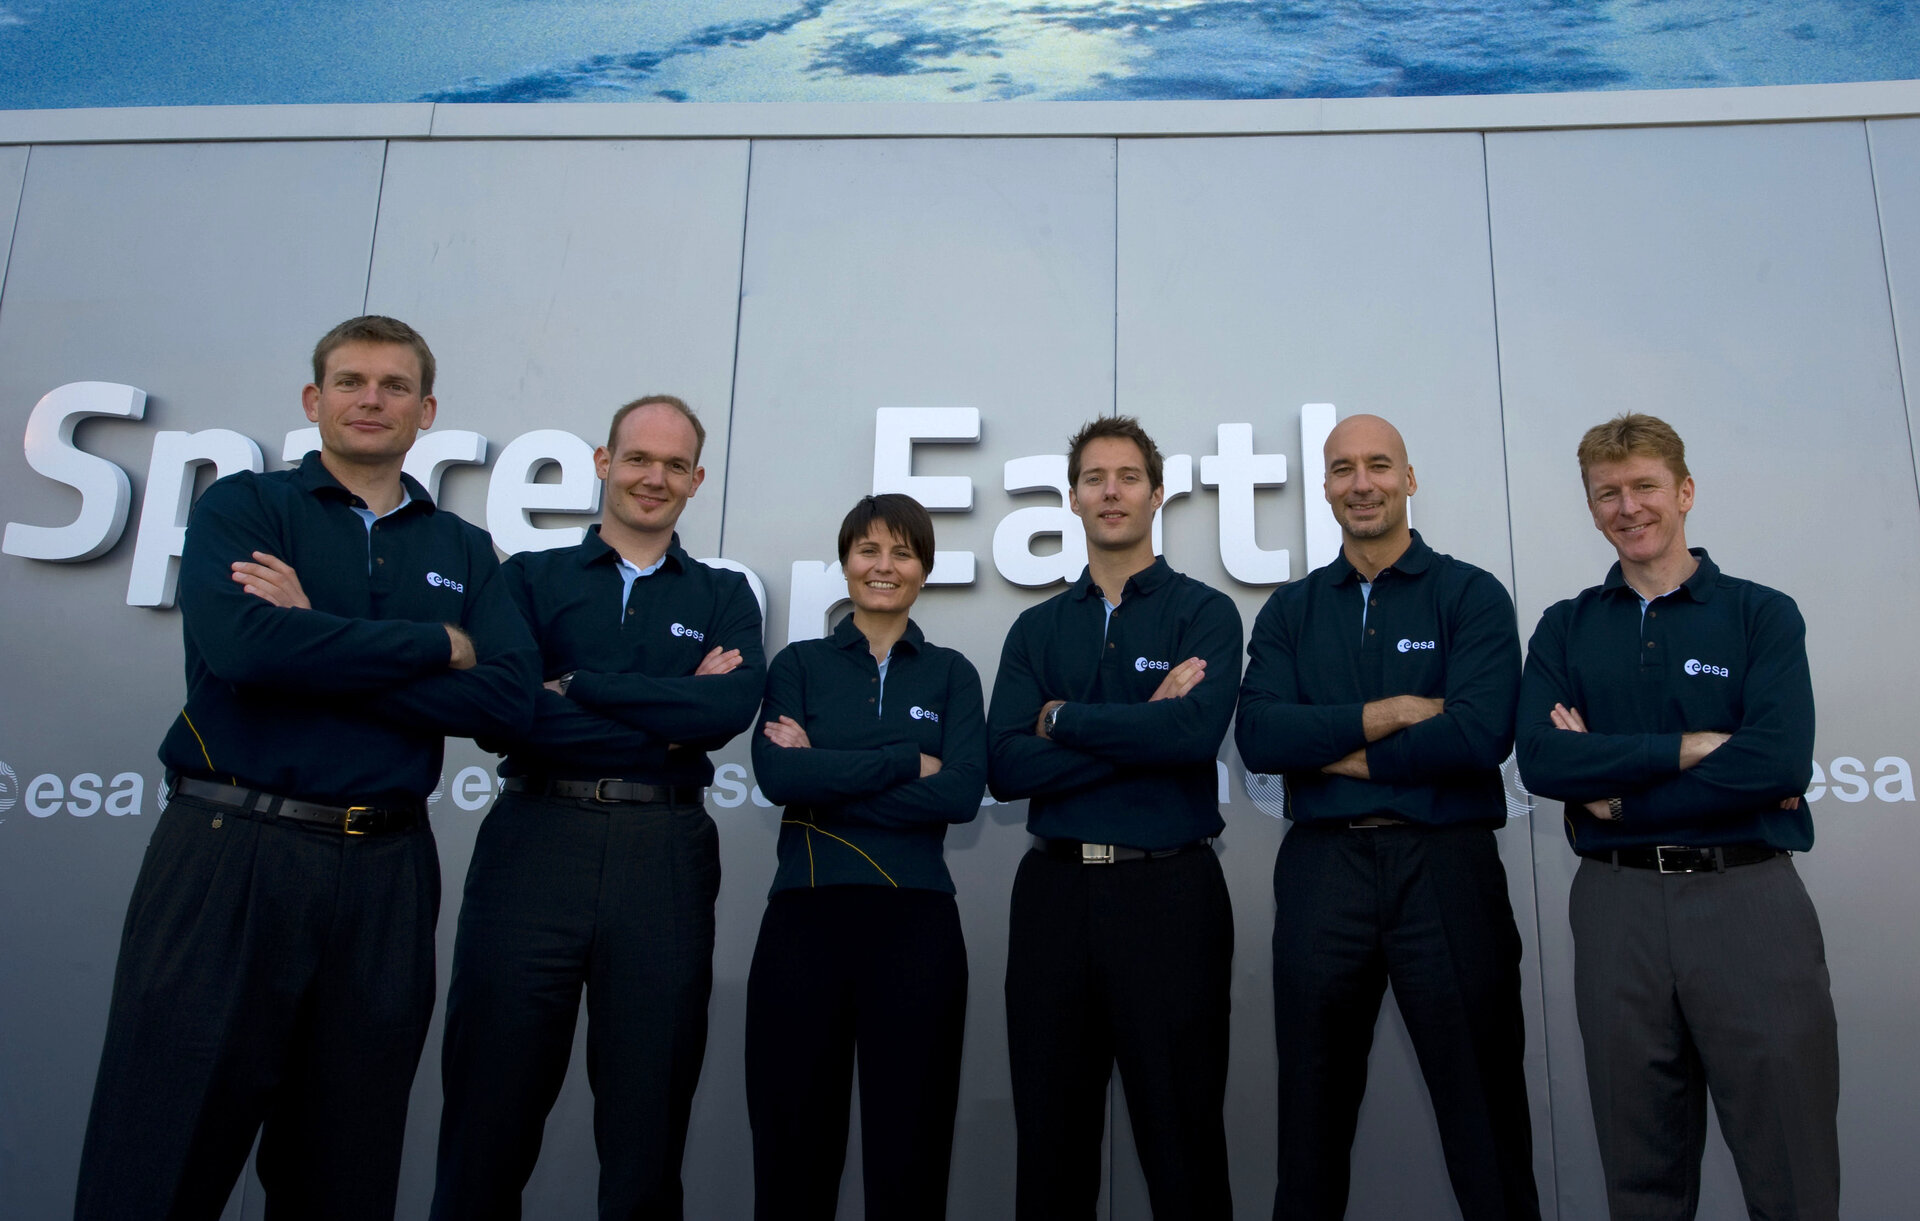 ESA astronauts at Le Bourget before the Human Spaceflight and Exploration in Europe conference